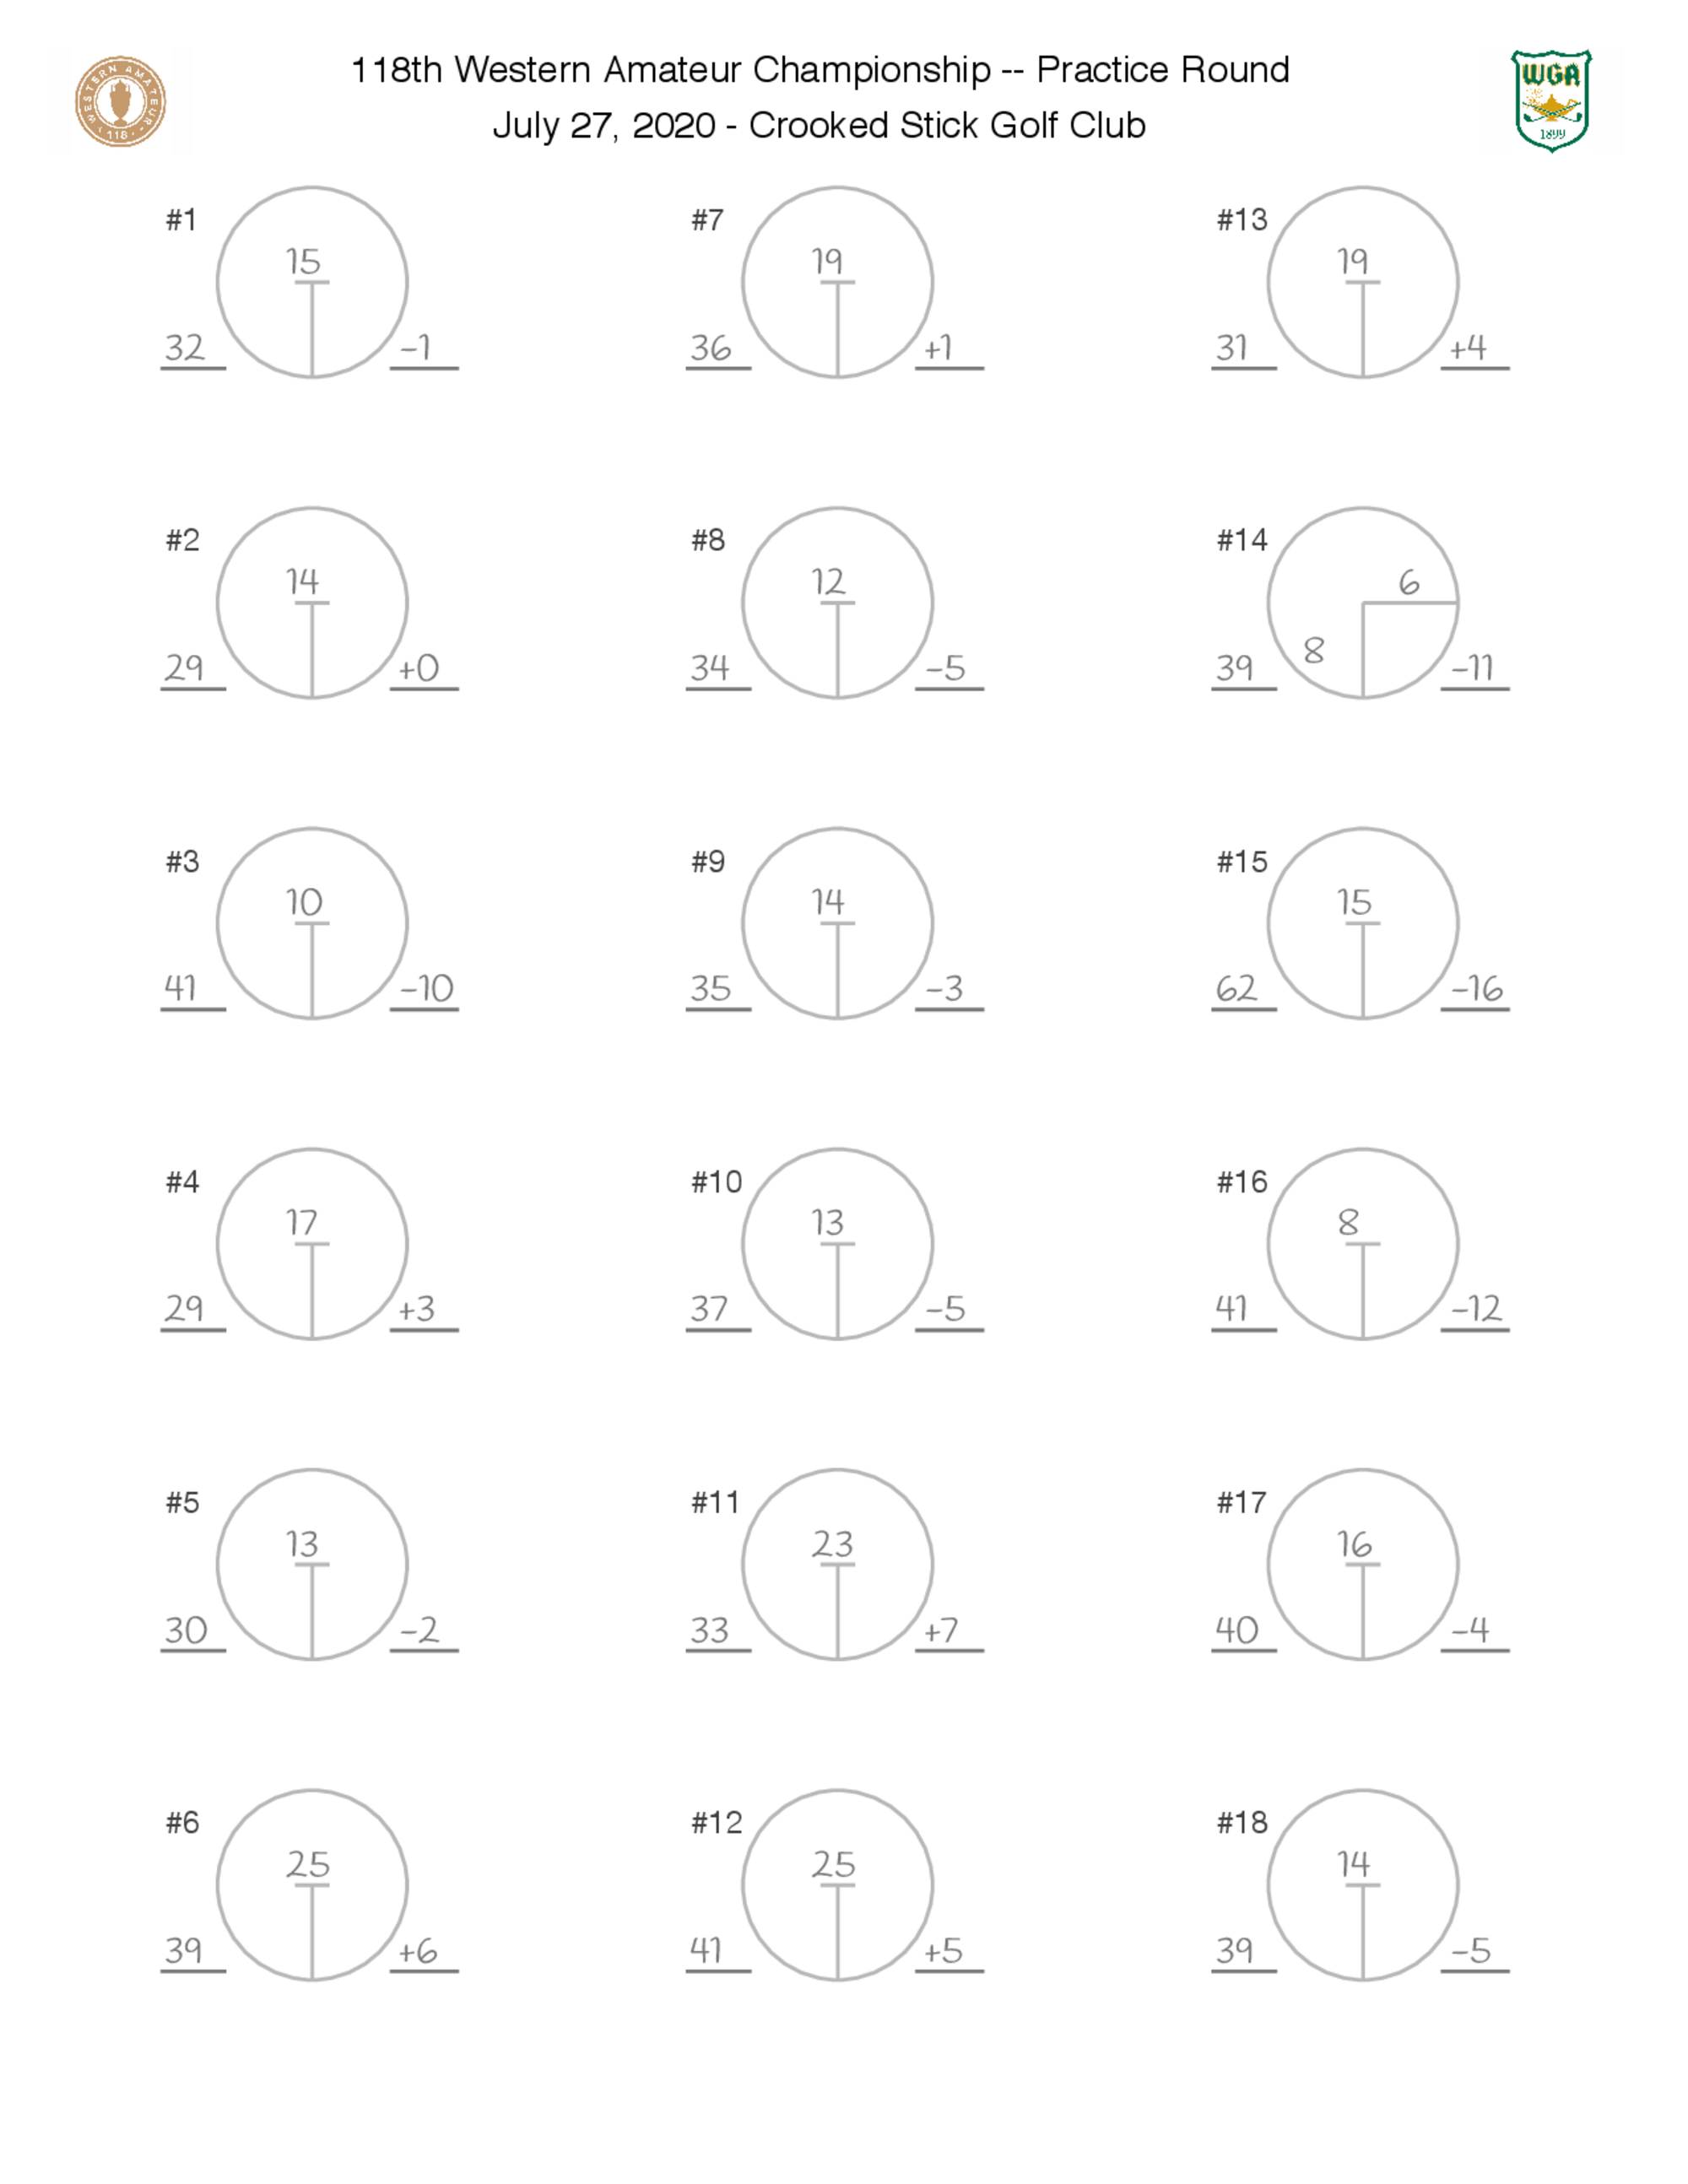 Practice round hole locations 1